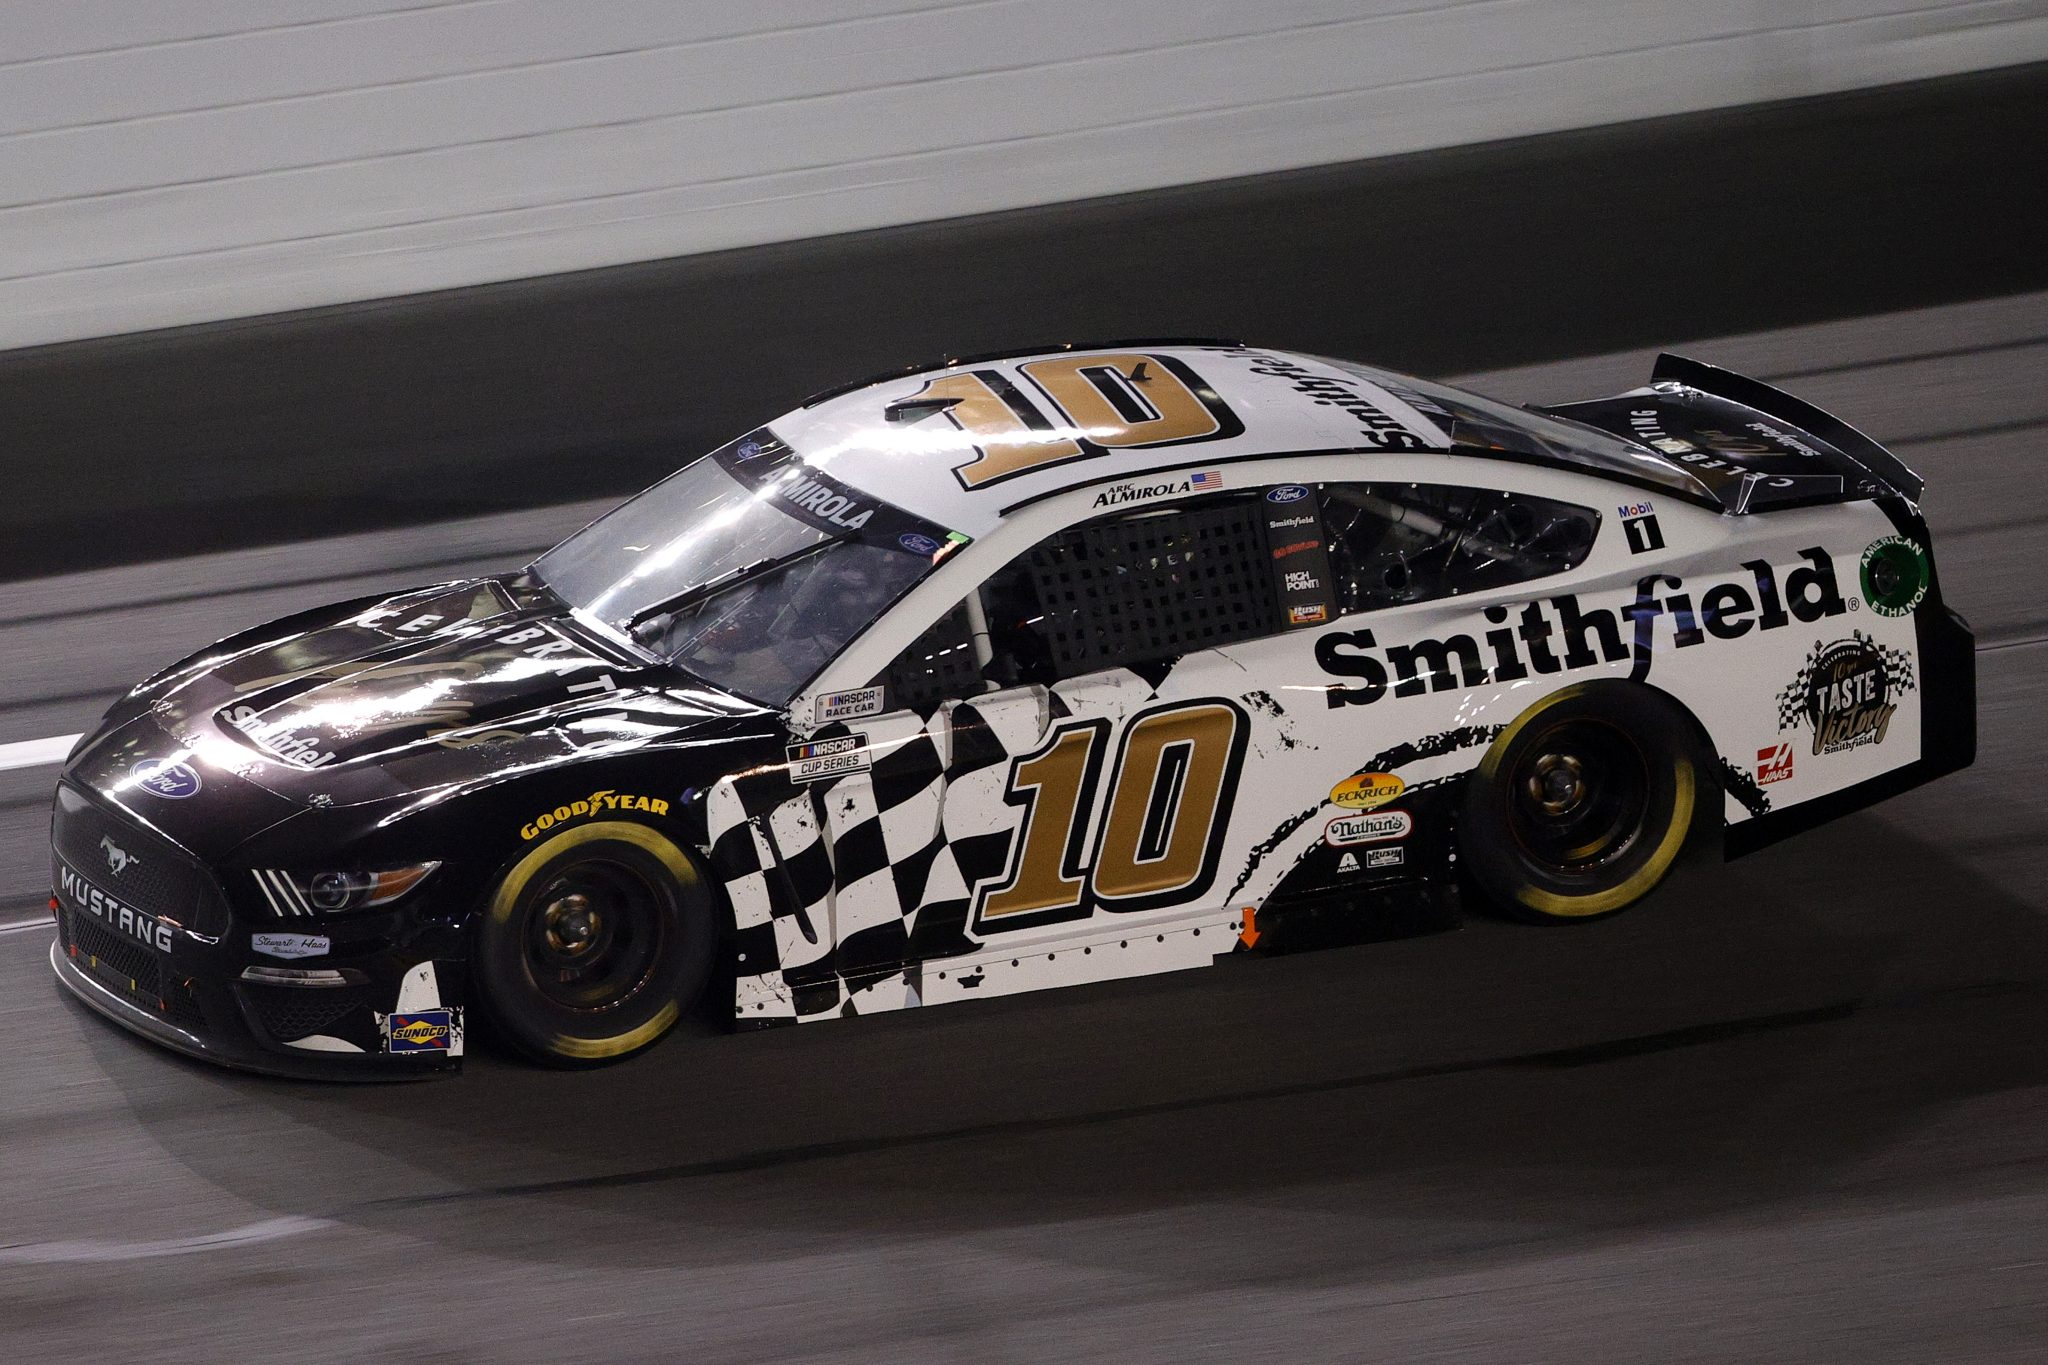 DAYTONA BEACH, FLORIDA - FEBRUARY 09: Aric Almirola, driver of the #10 Smithfield Ford, drives during the NASCAR Cup Series Busch Clash at Daytona at Daytona International Speedway on February 09, 2021 in Daytona Beach, Florida. (Photo by Chris Graythen/Getty Images) | Getty Images